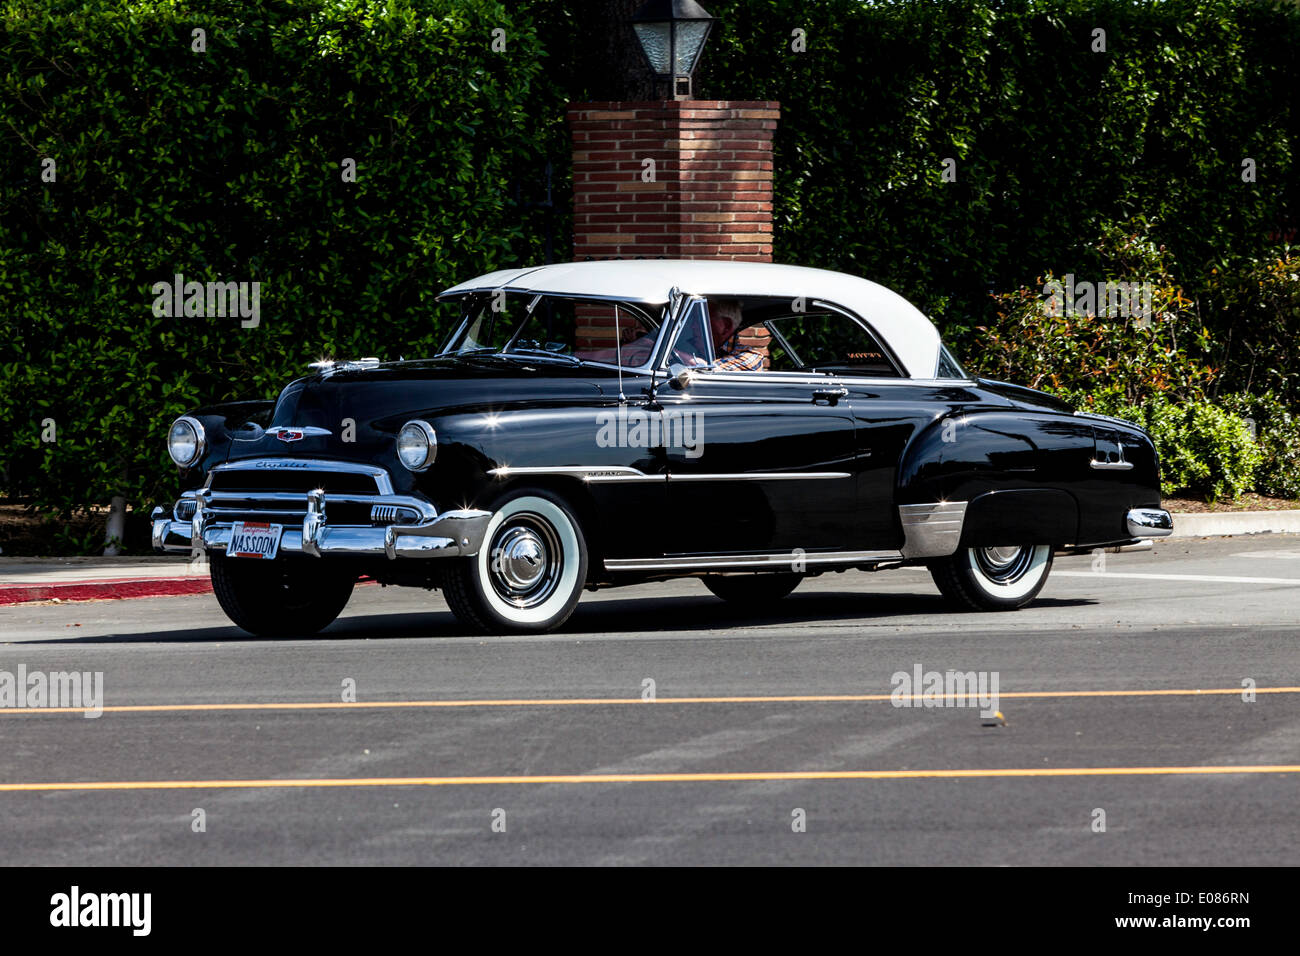 A 1951 Chevy Deluxe